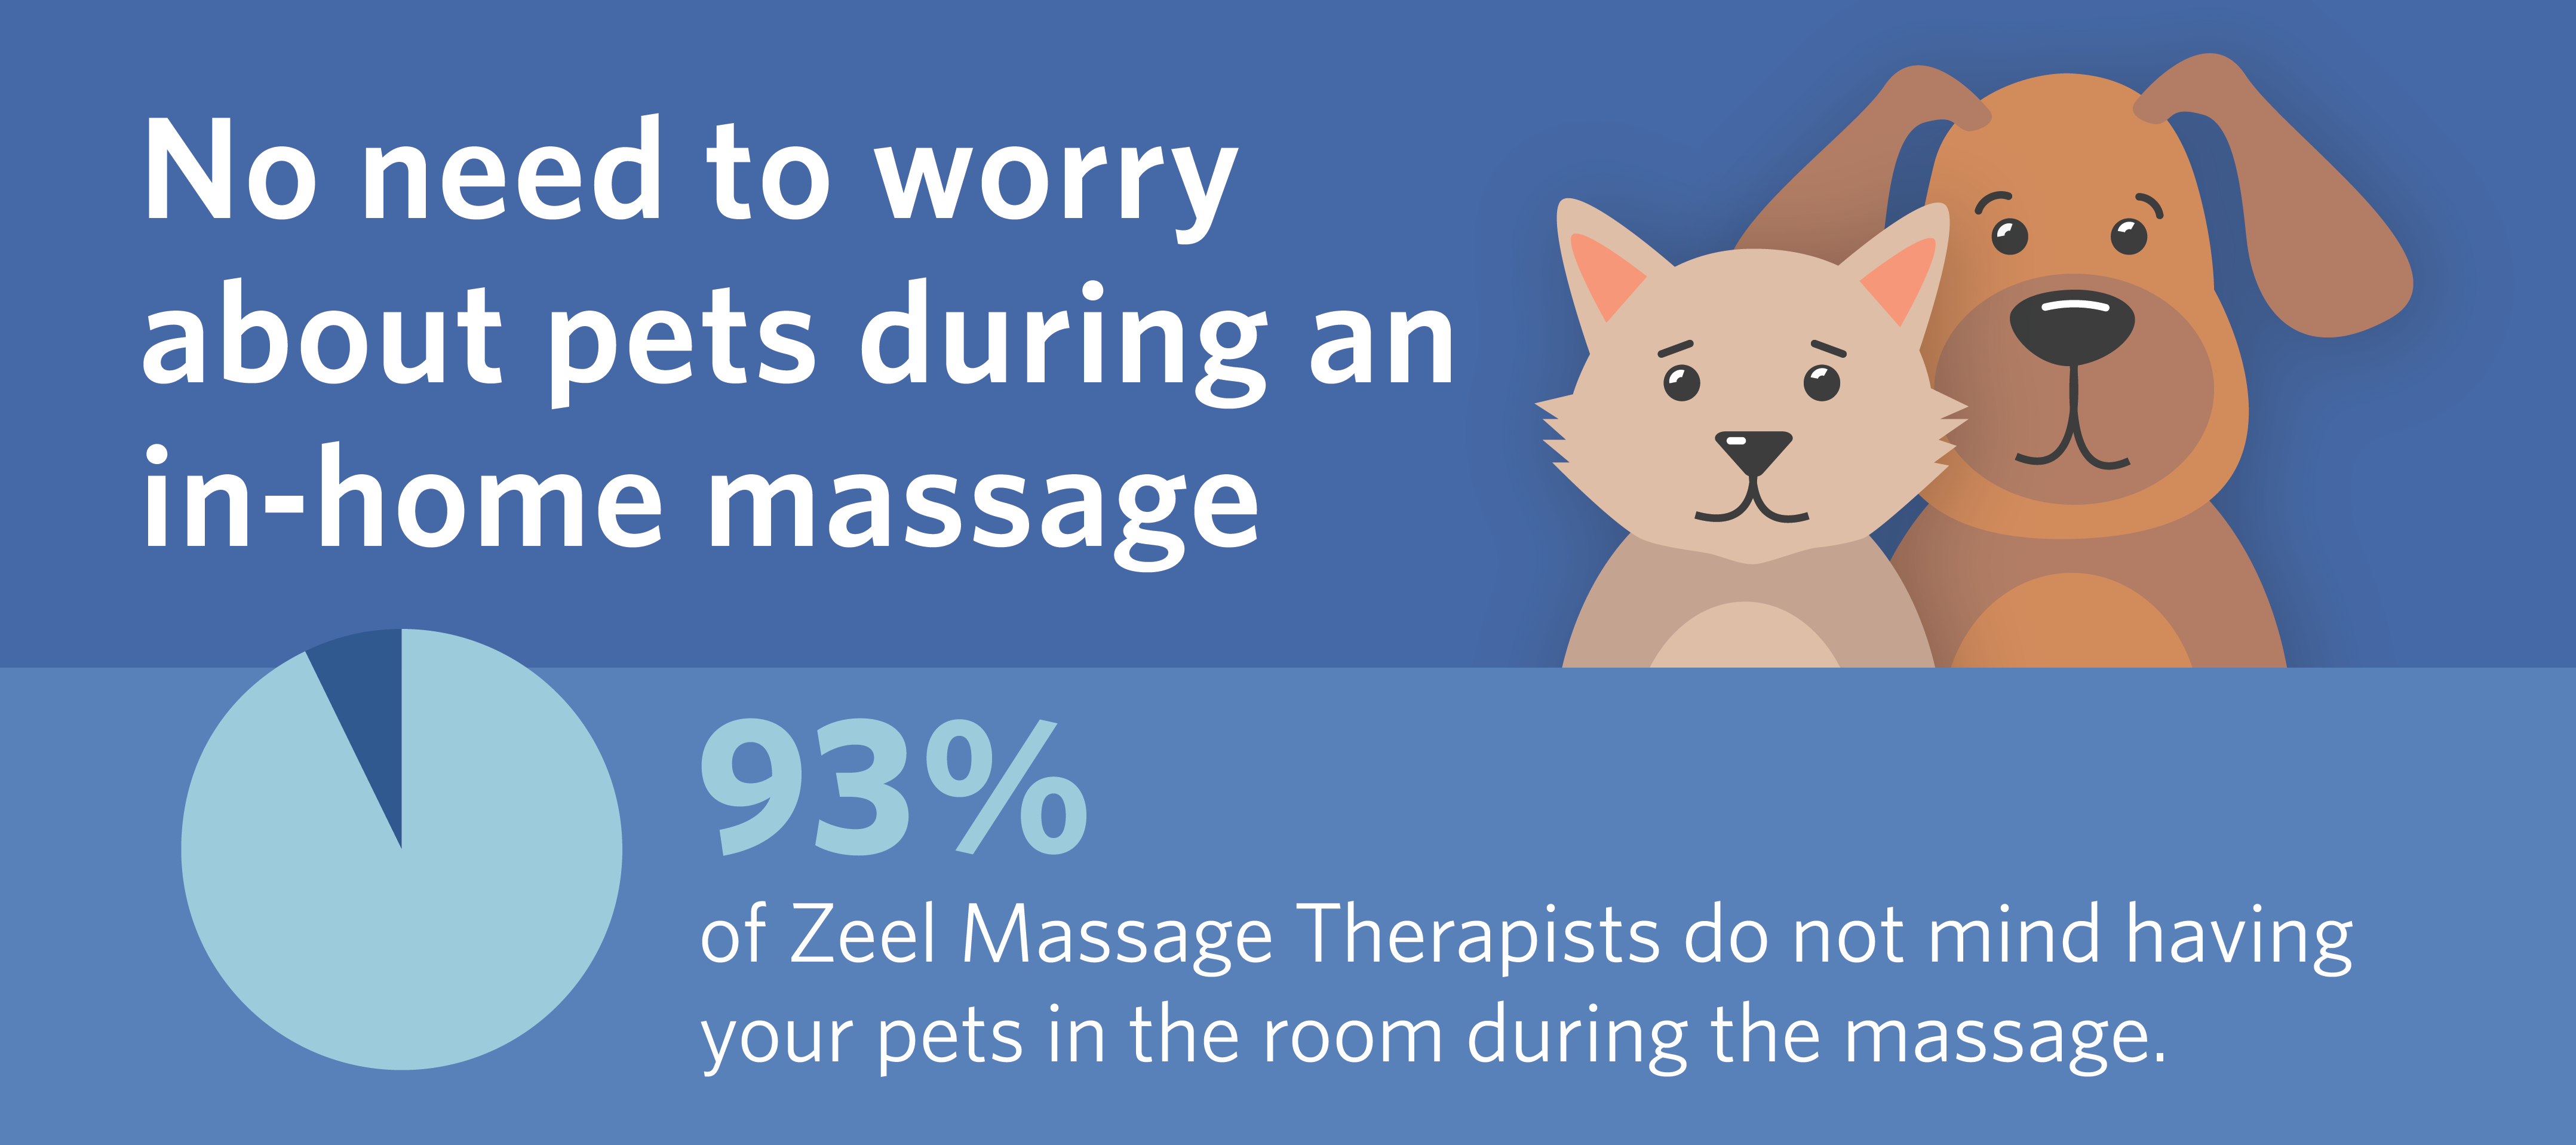 Pets are okay! A little furry company won't disrupt your Zeel massage.